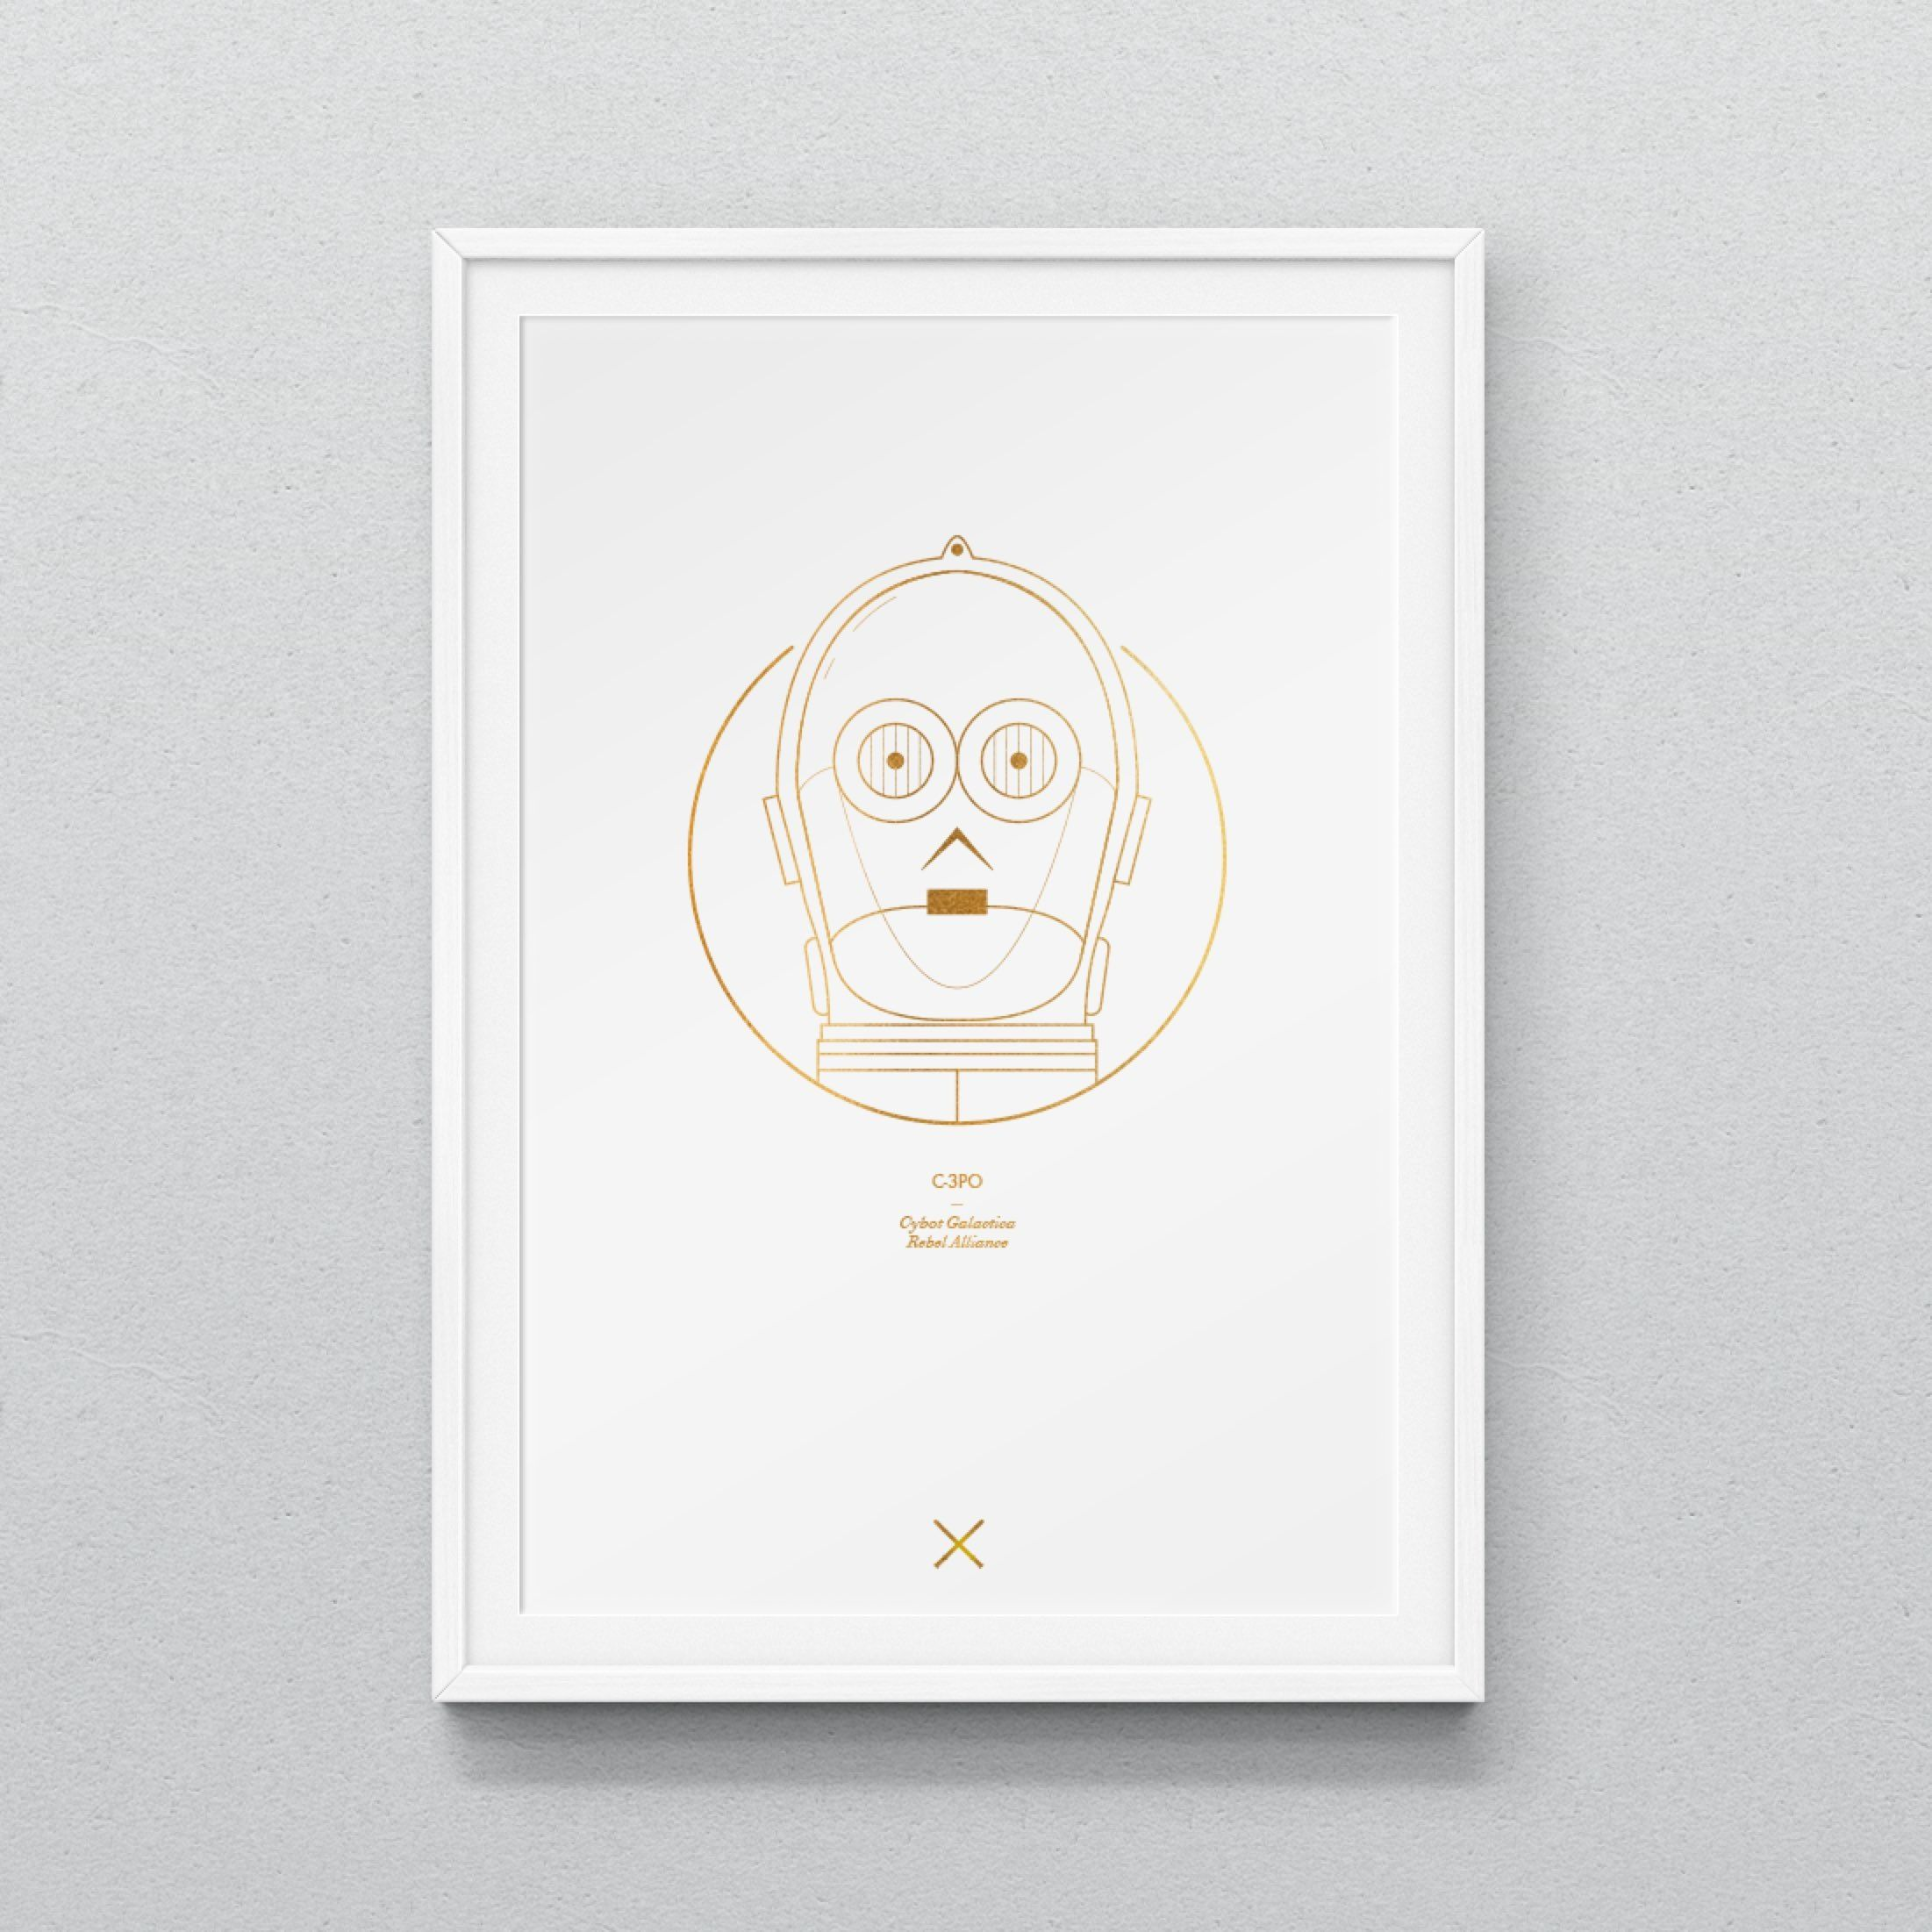 C-3PO A3 Print Fan ArtNon limited edition.Printed to order, Dispatched within 7 working days.210 GSM Digital Print